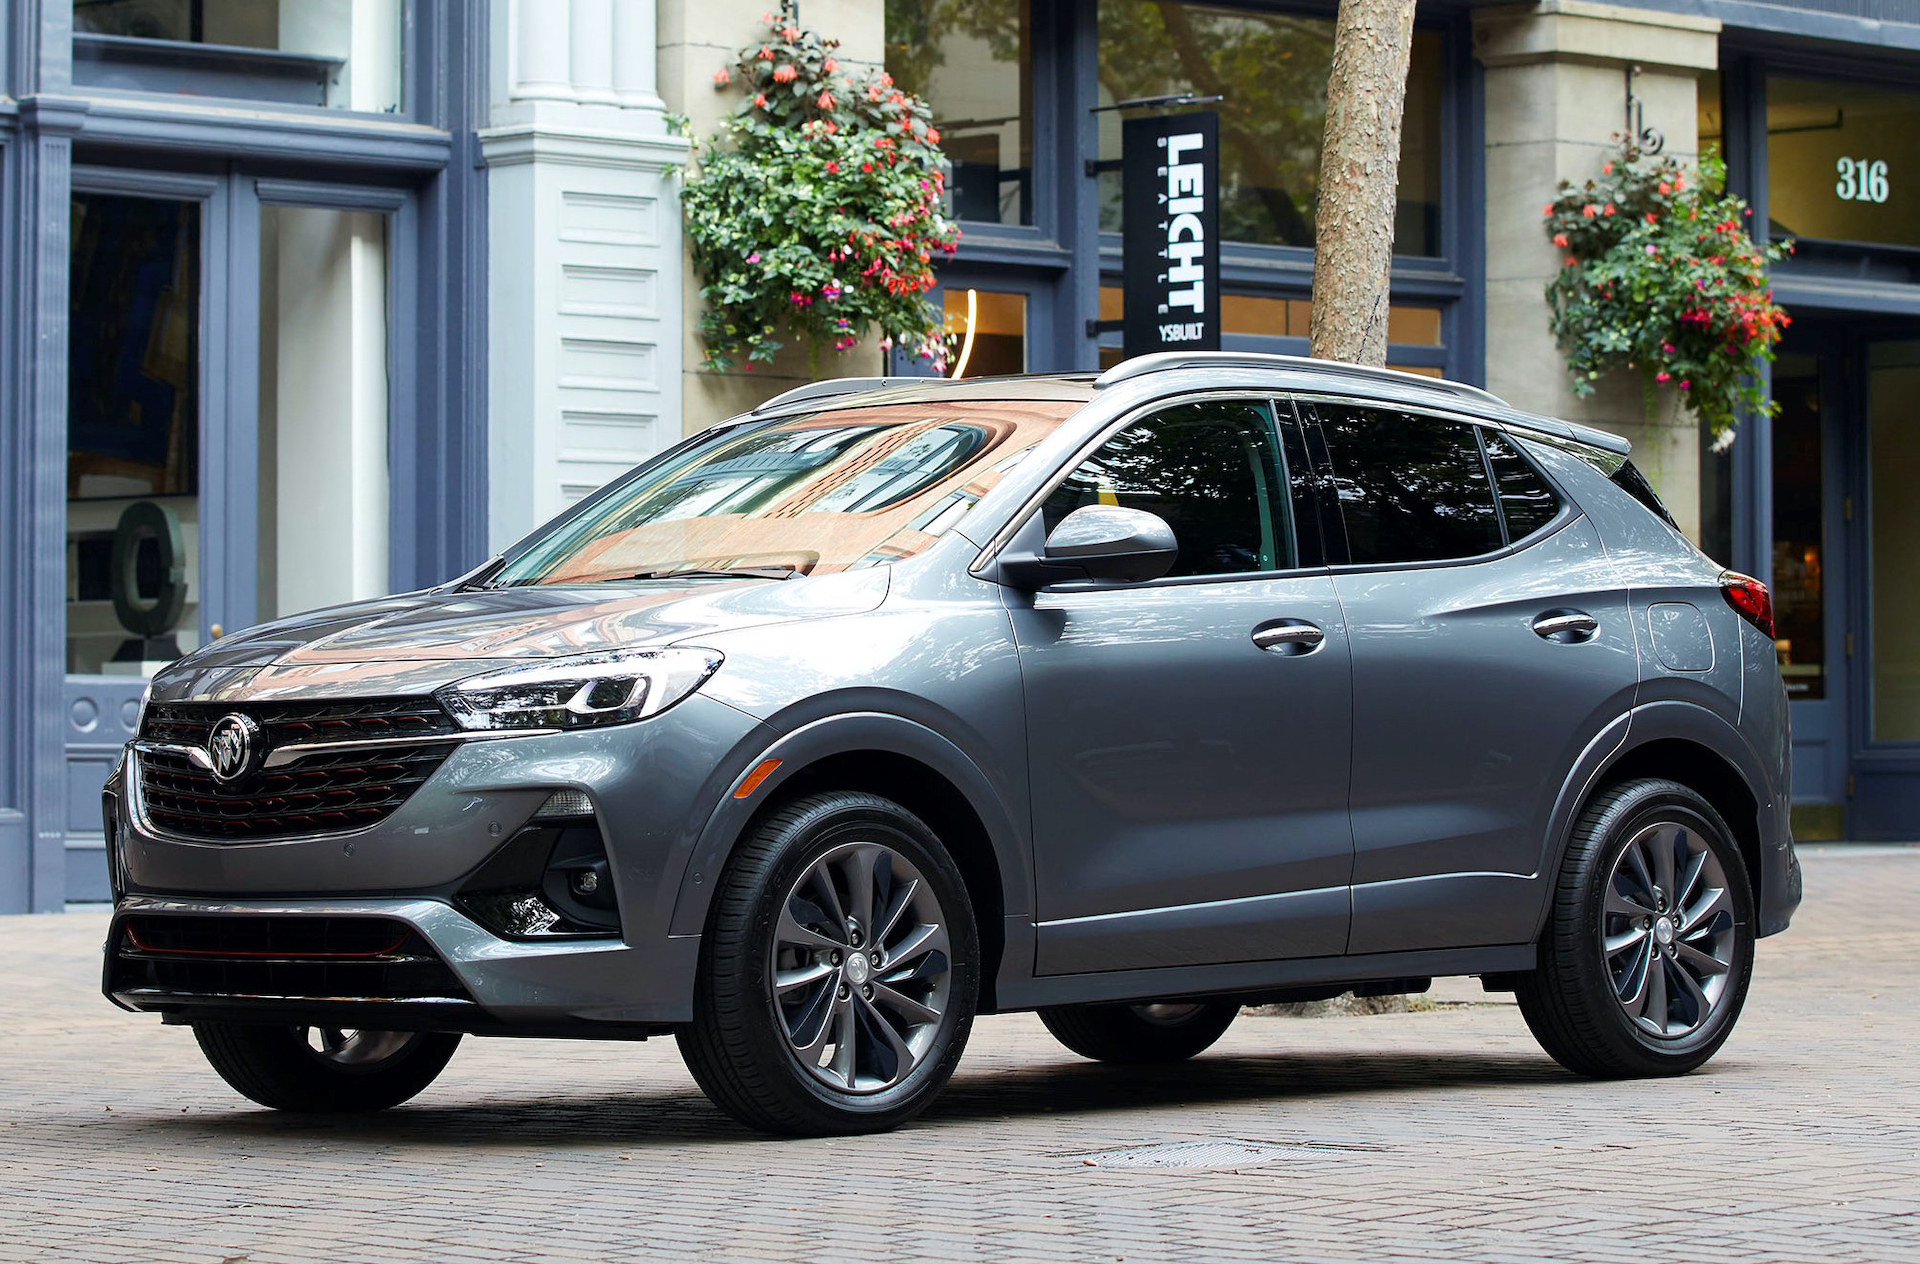 2021 Buick Encore Review, Ratings, Specs, Prices, And Photos When Is The New 2021 Buick Encore Gx Coming Out